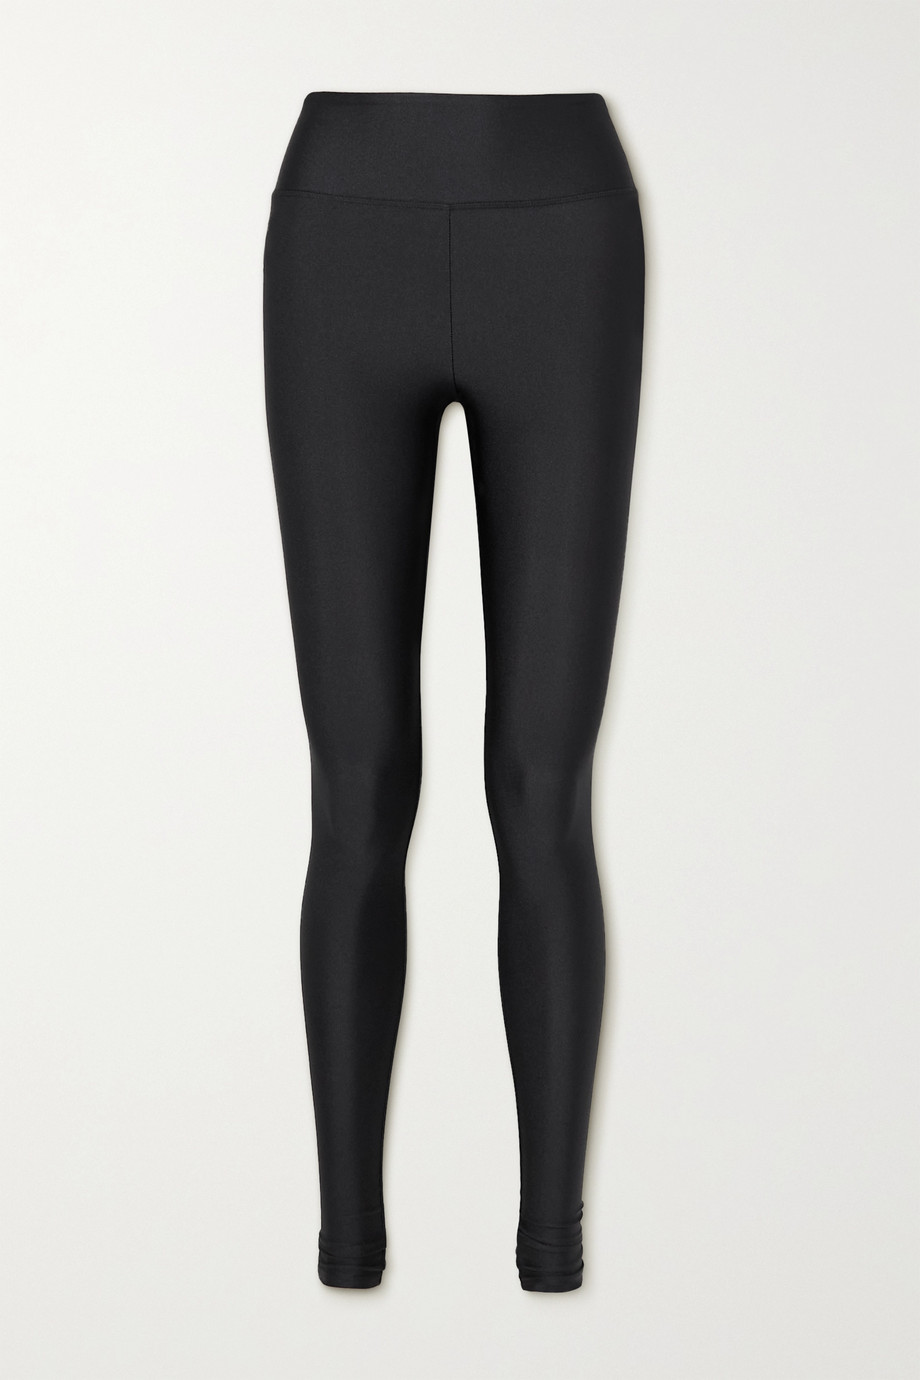 Balenciaga Stretch leggings